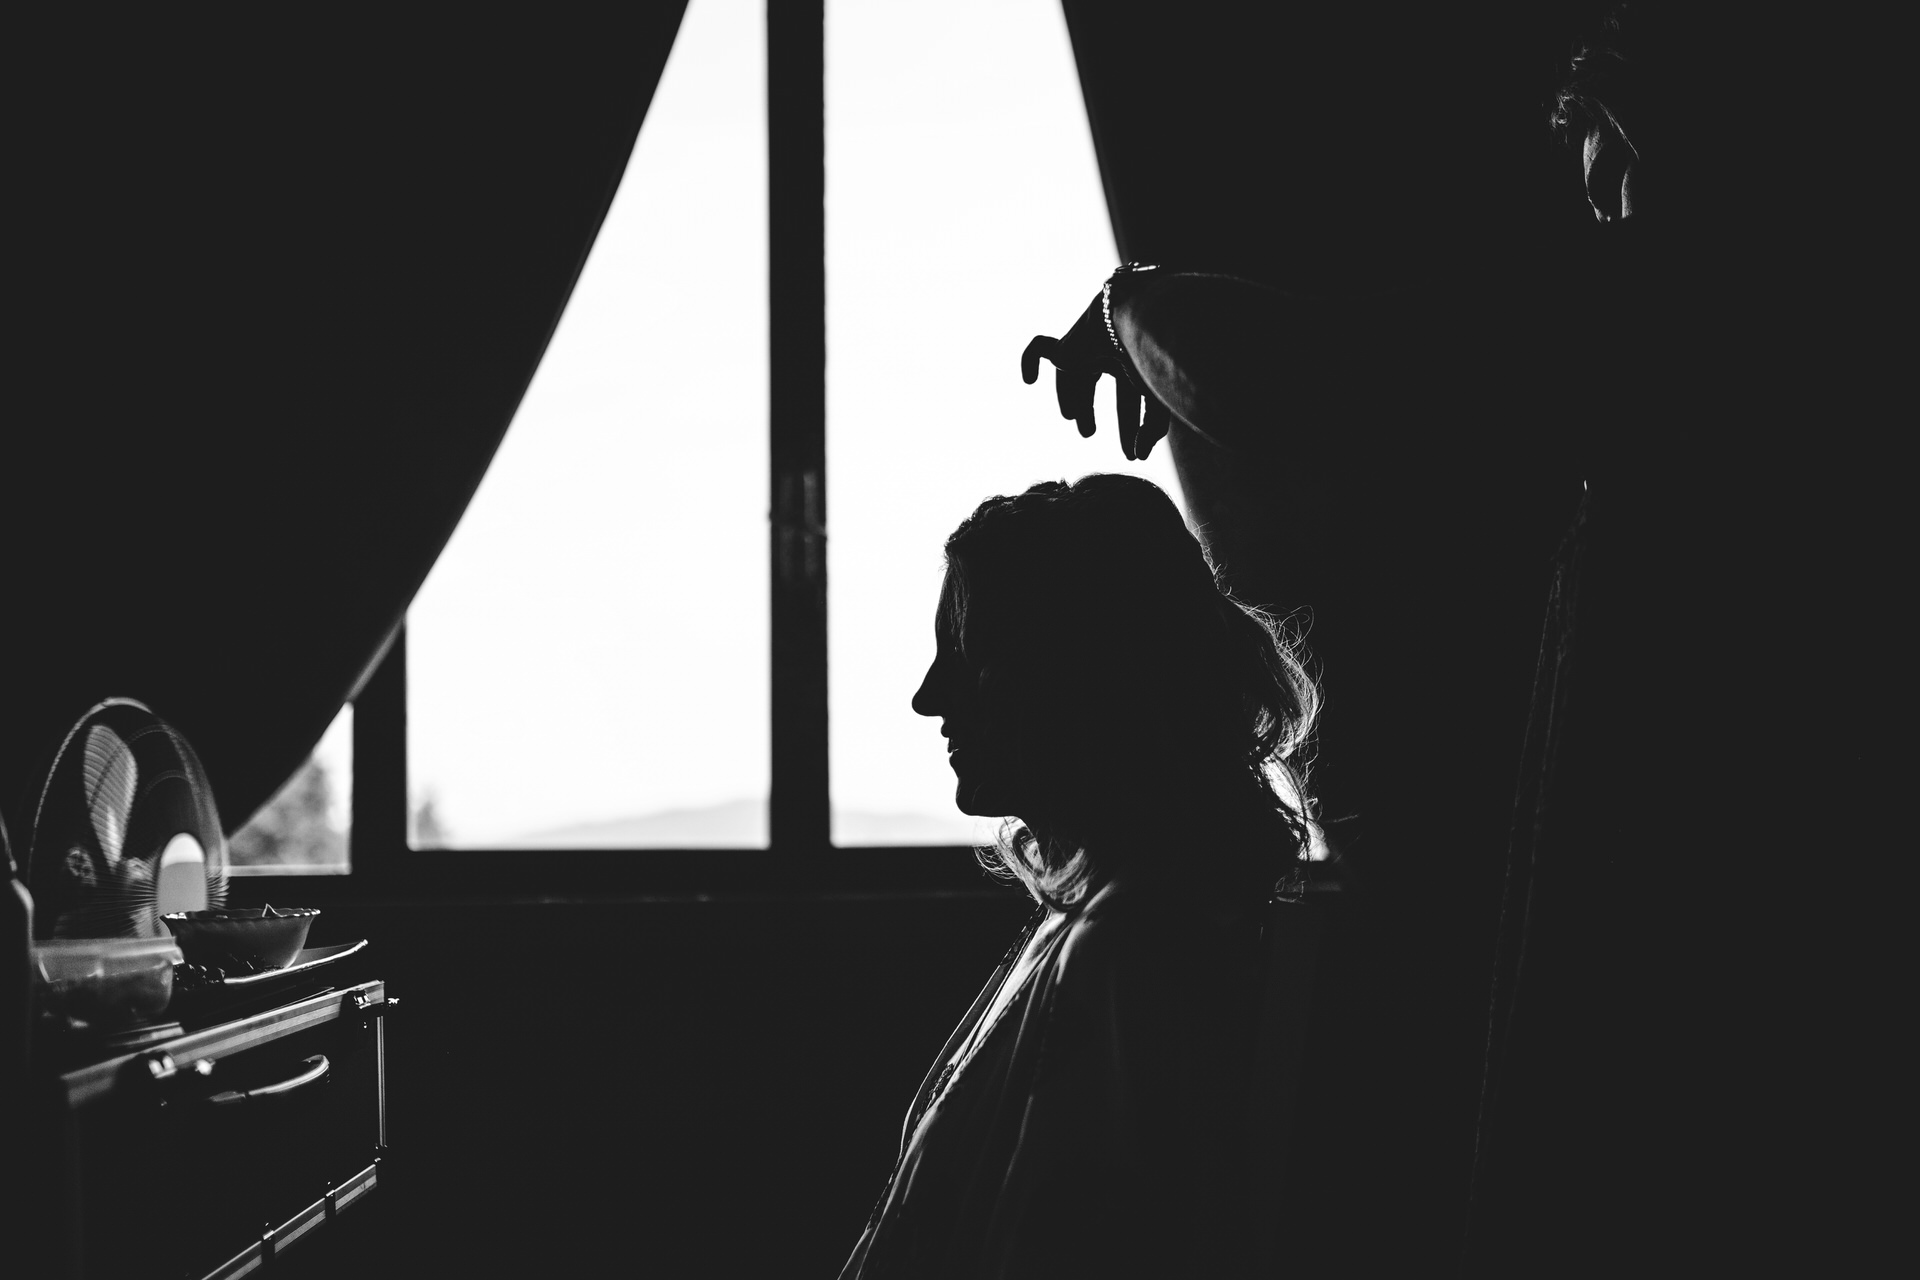 Silhouette during the getting ready for elopement ceremoy at Villa Olimpia, Ambra, Tuscany